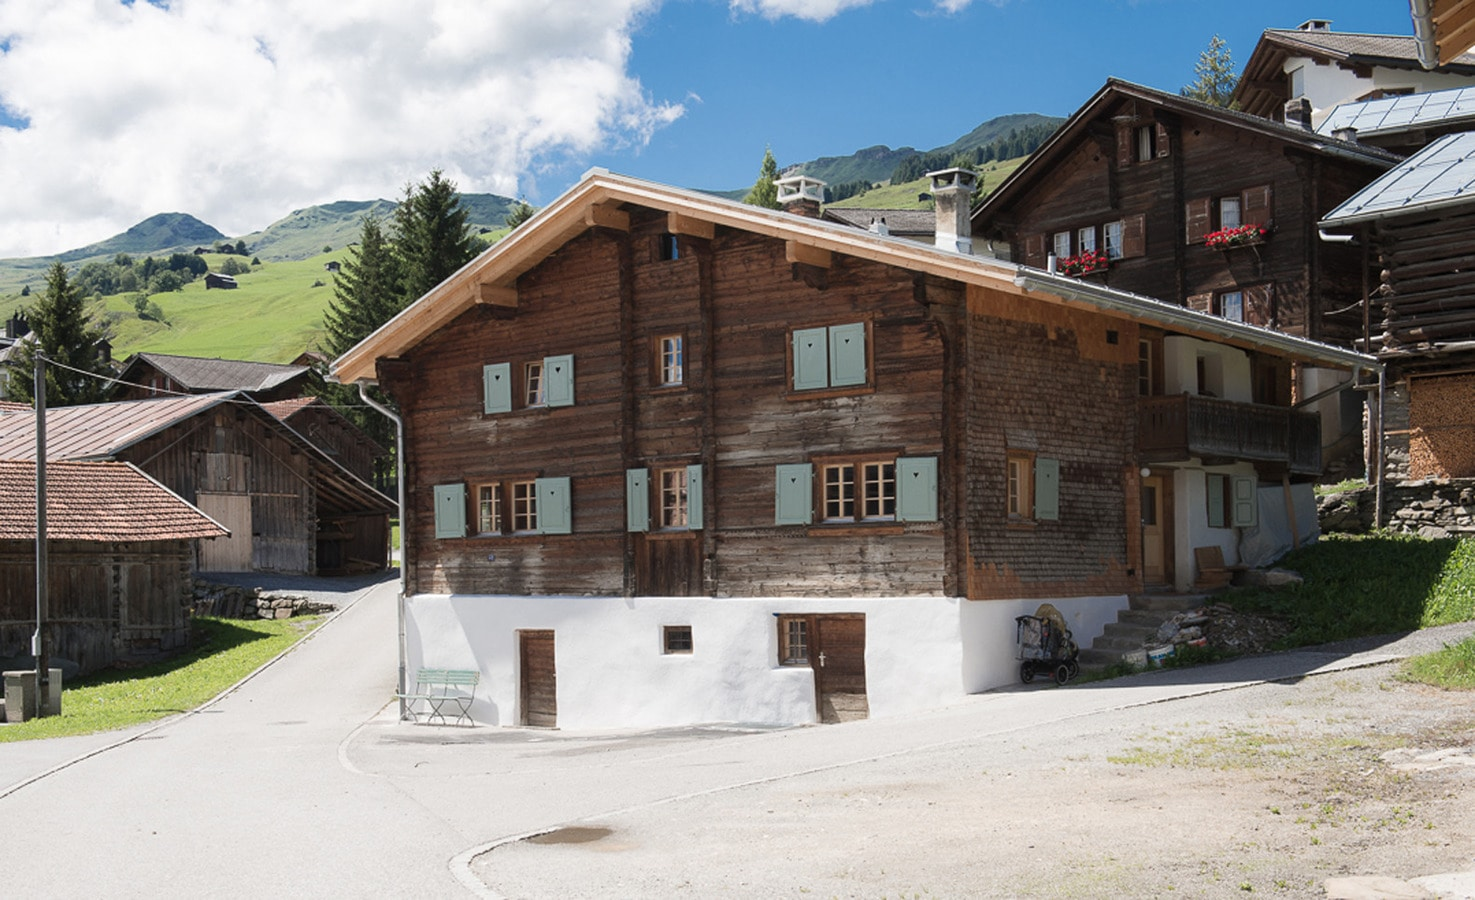 traditional swiss ski chalet renovated into two modern flex space a traditional ski chalet in the swiss alps has been transformed into two timber clad